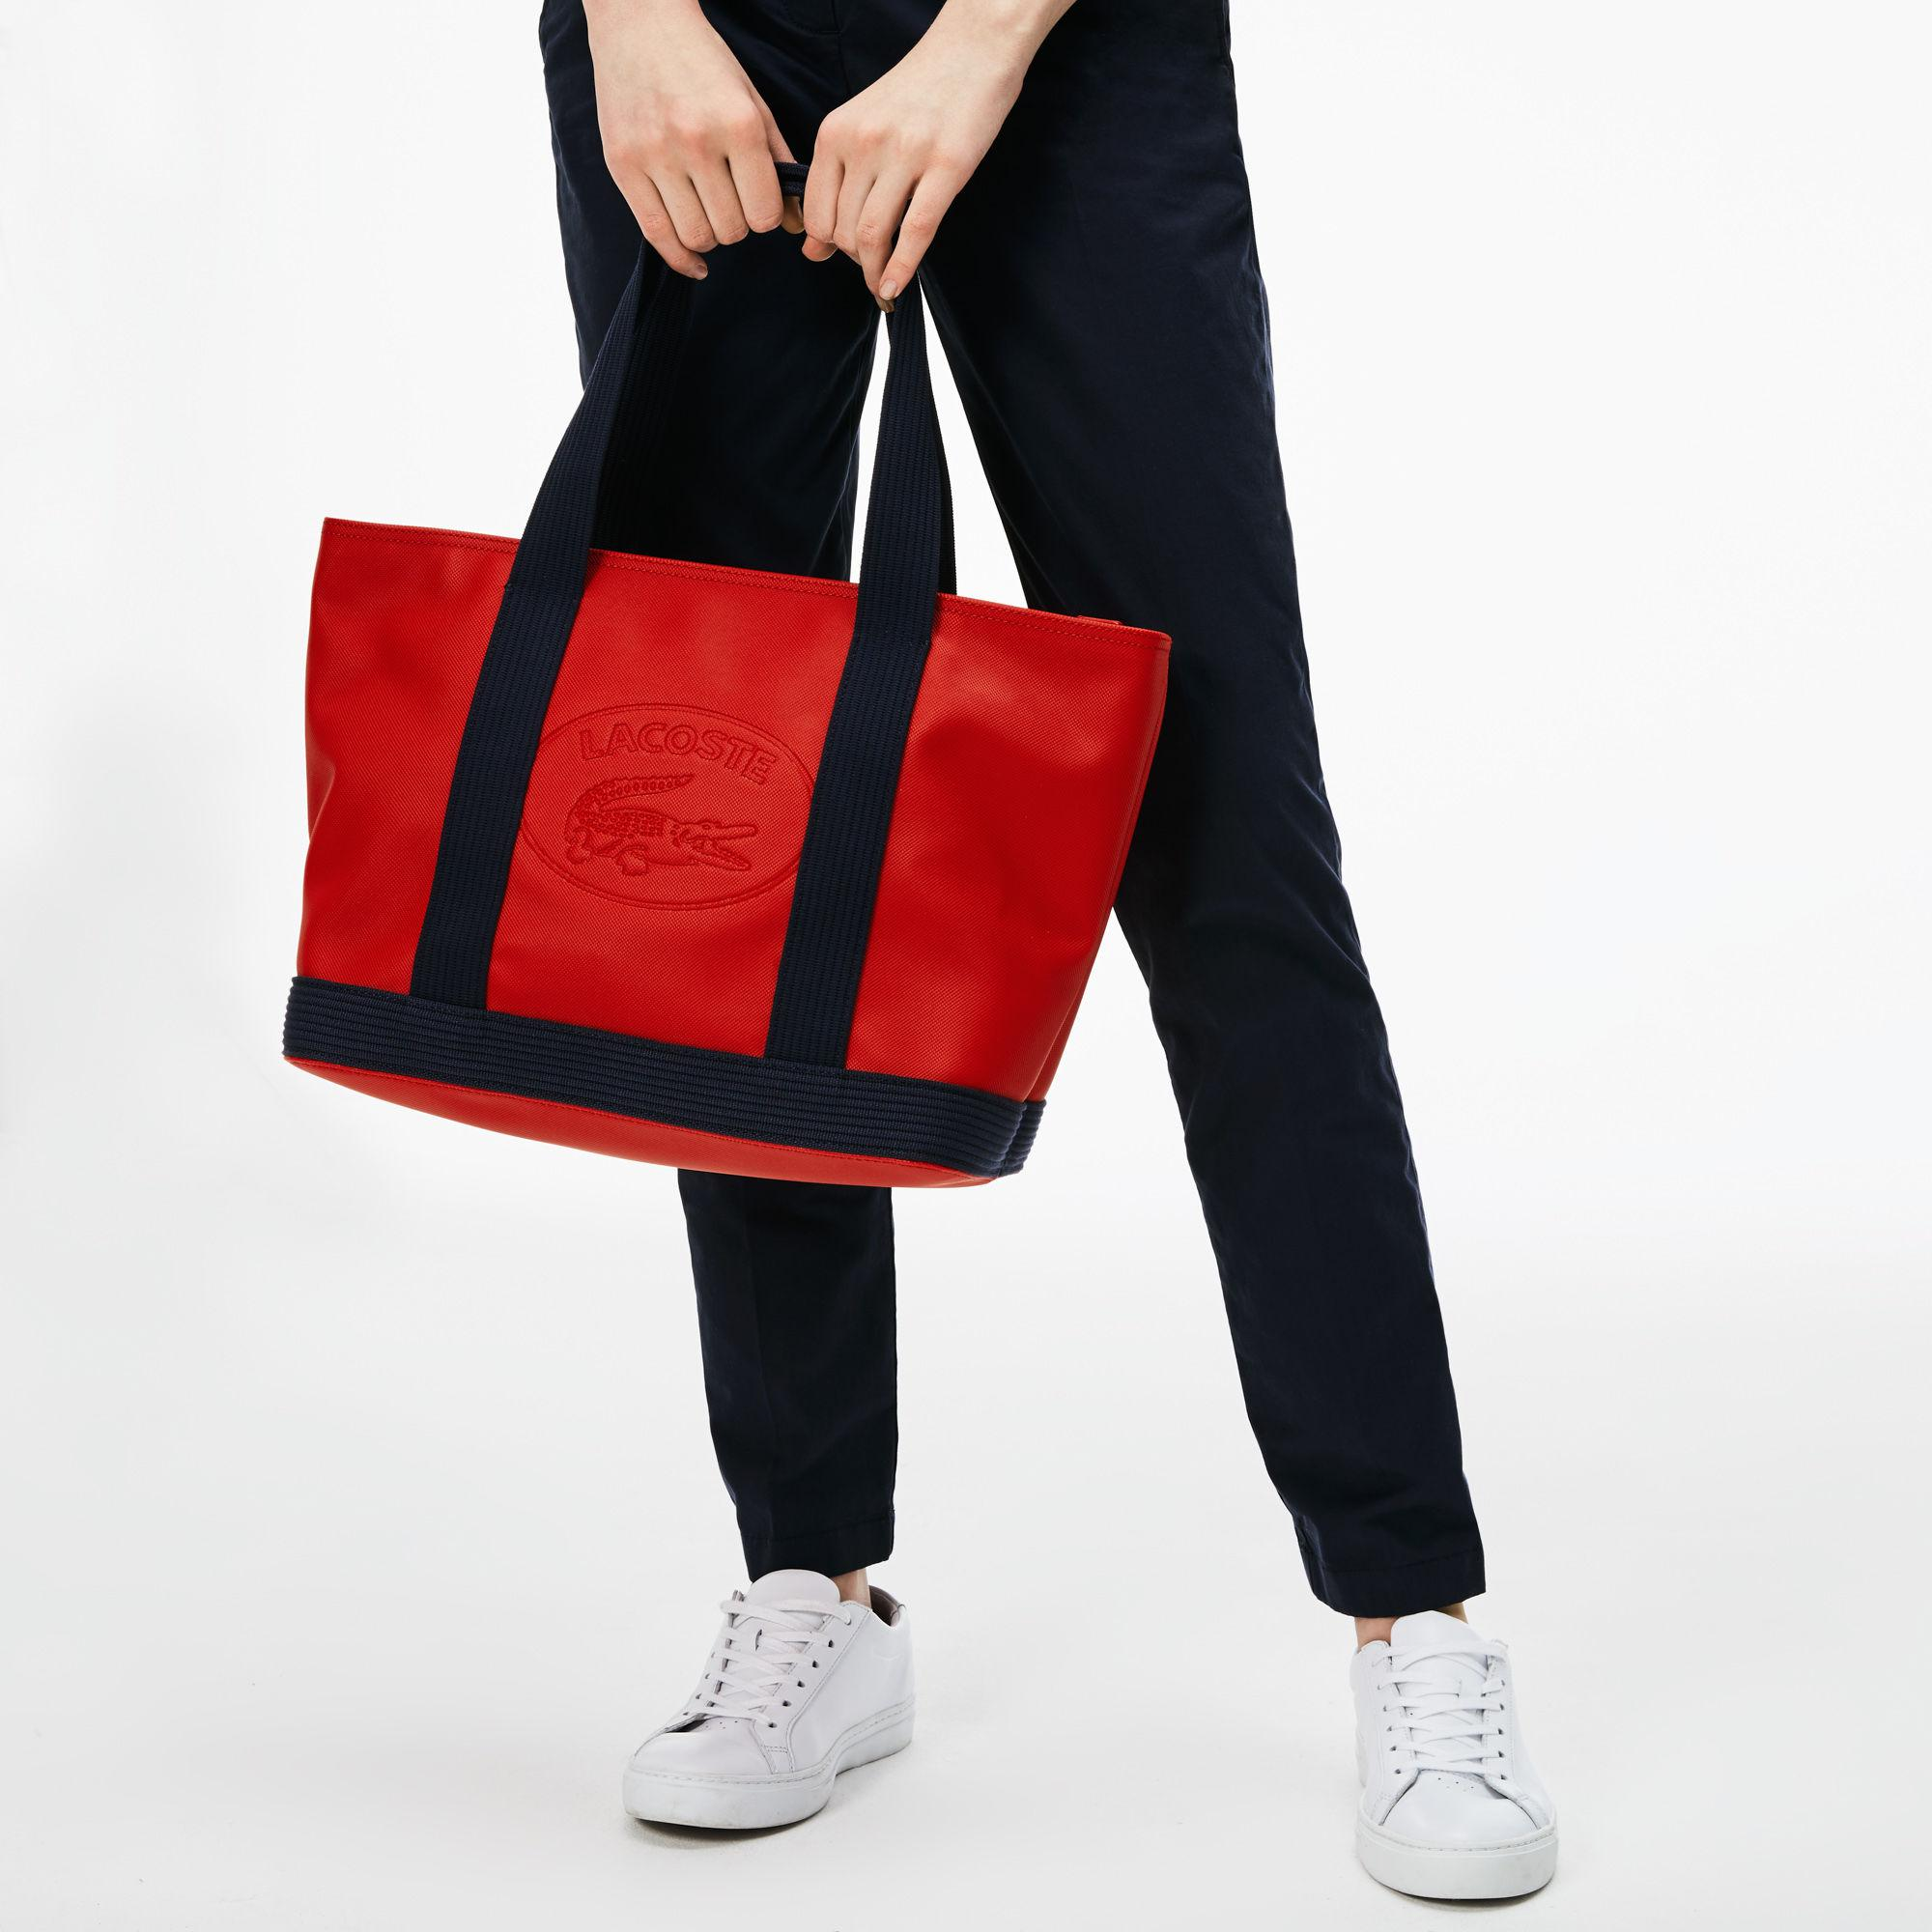 888d06bdcc3b Lyst - Lacoste Classic Coated Piqué Canvas Zip Tote Bag in Red